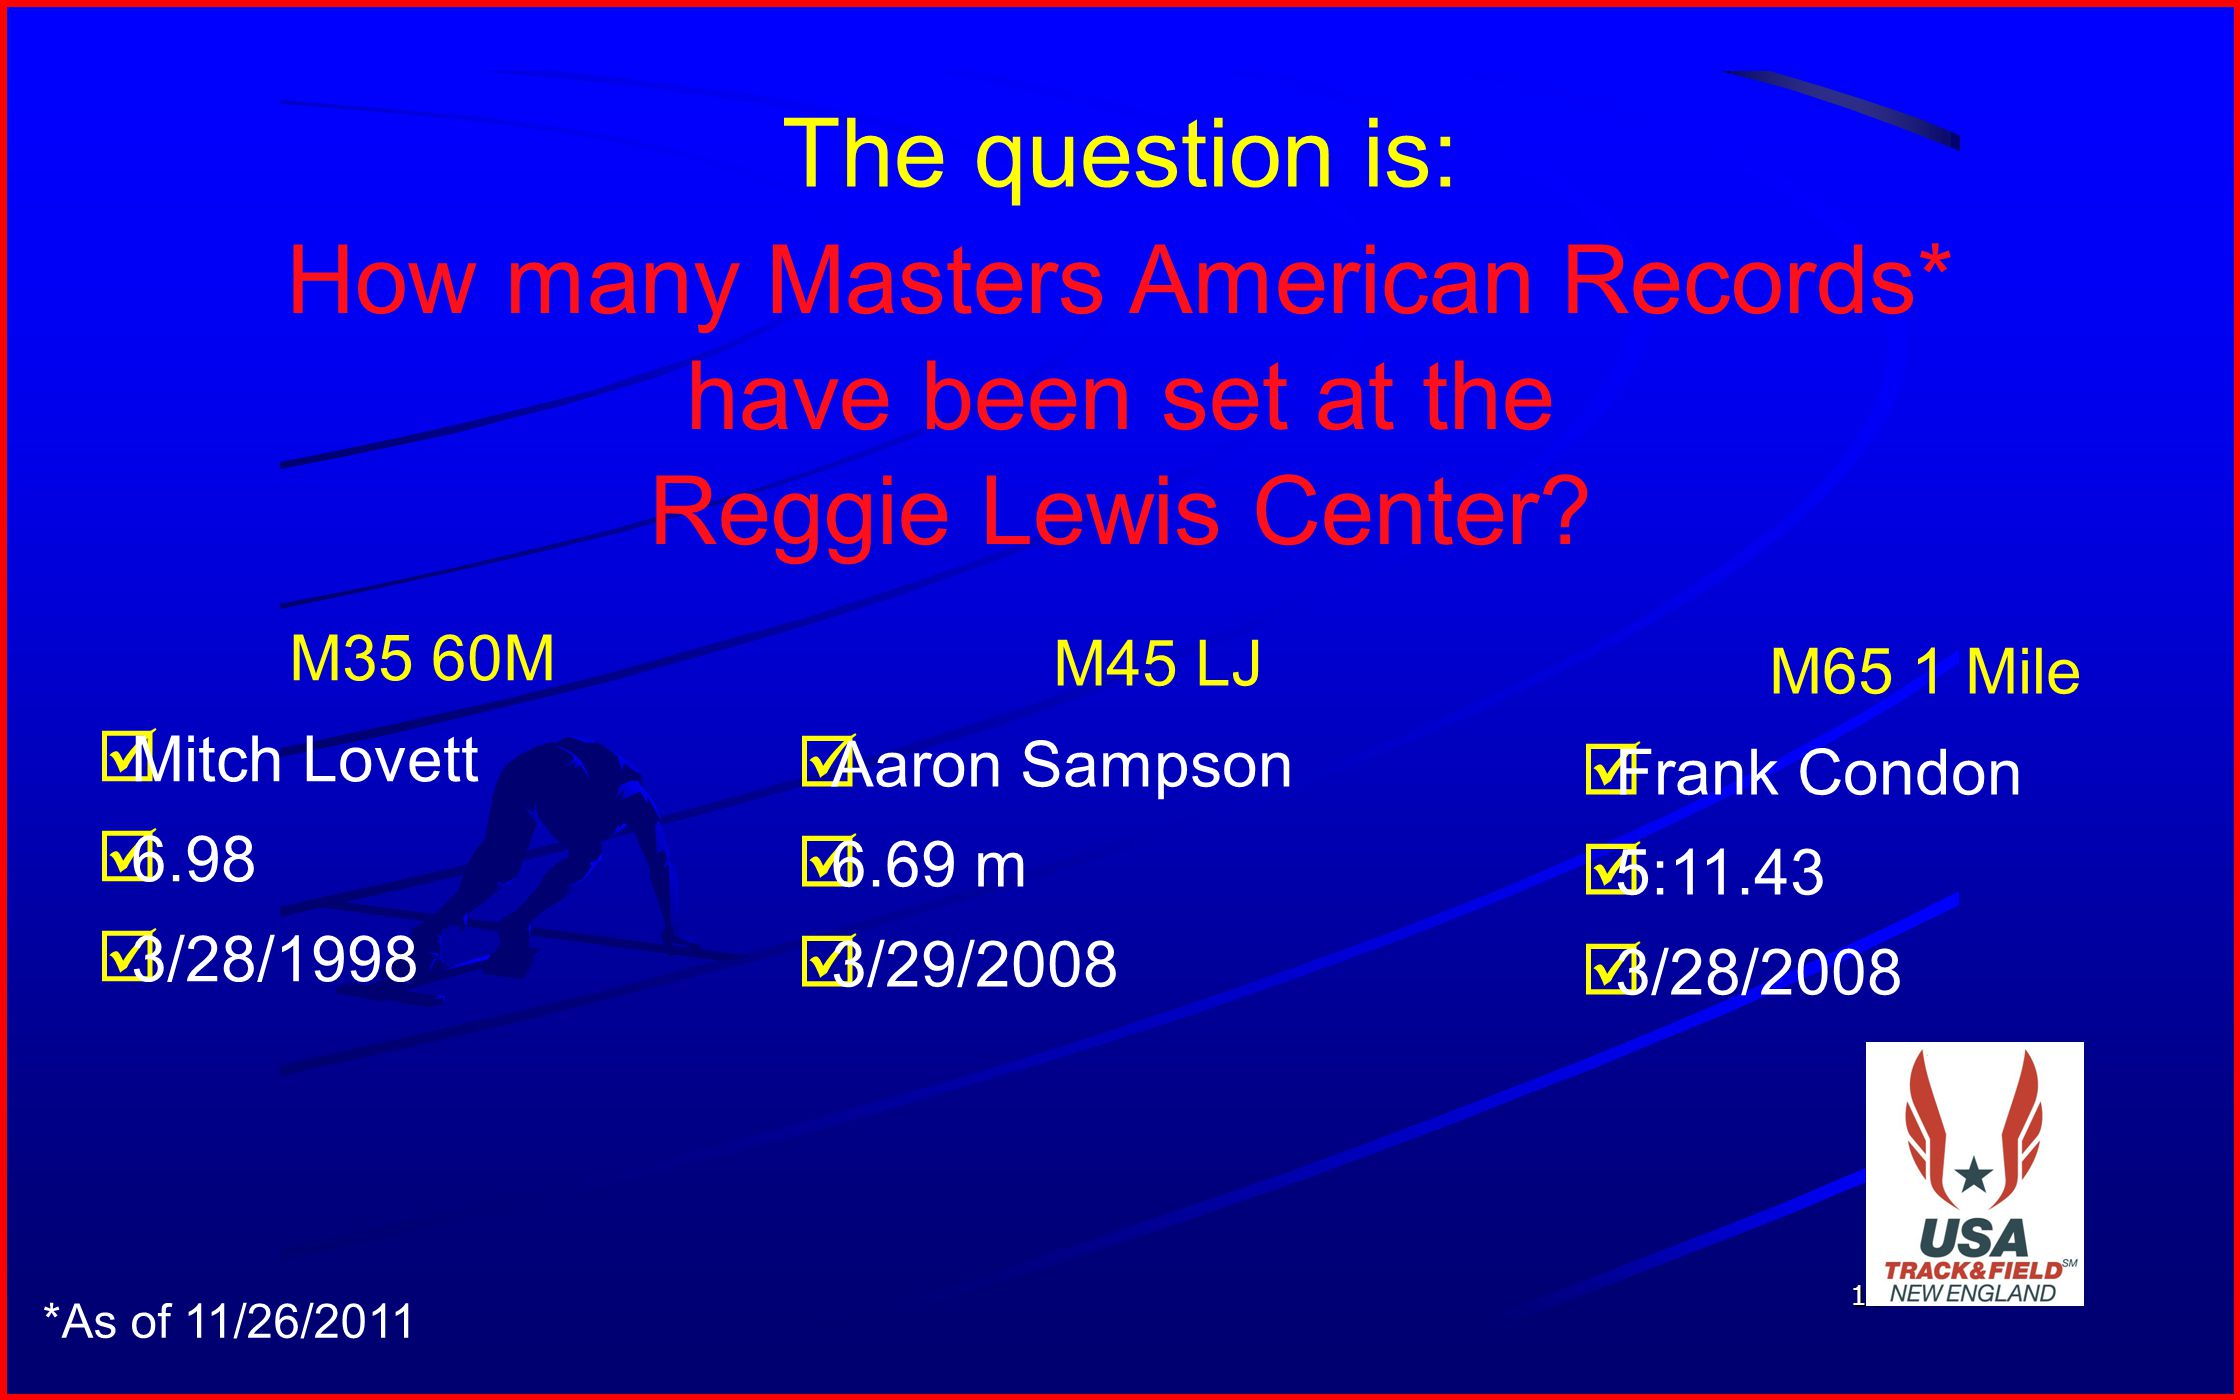 16 The question is: How many Masters American Records* have been set at the Reggie Lewis Center? M35 60M Mitch Lovett 6.98 3/28/1998 M45 LJ Aaron Samp